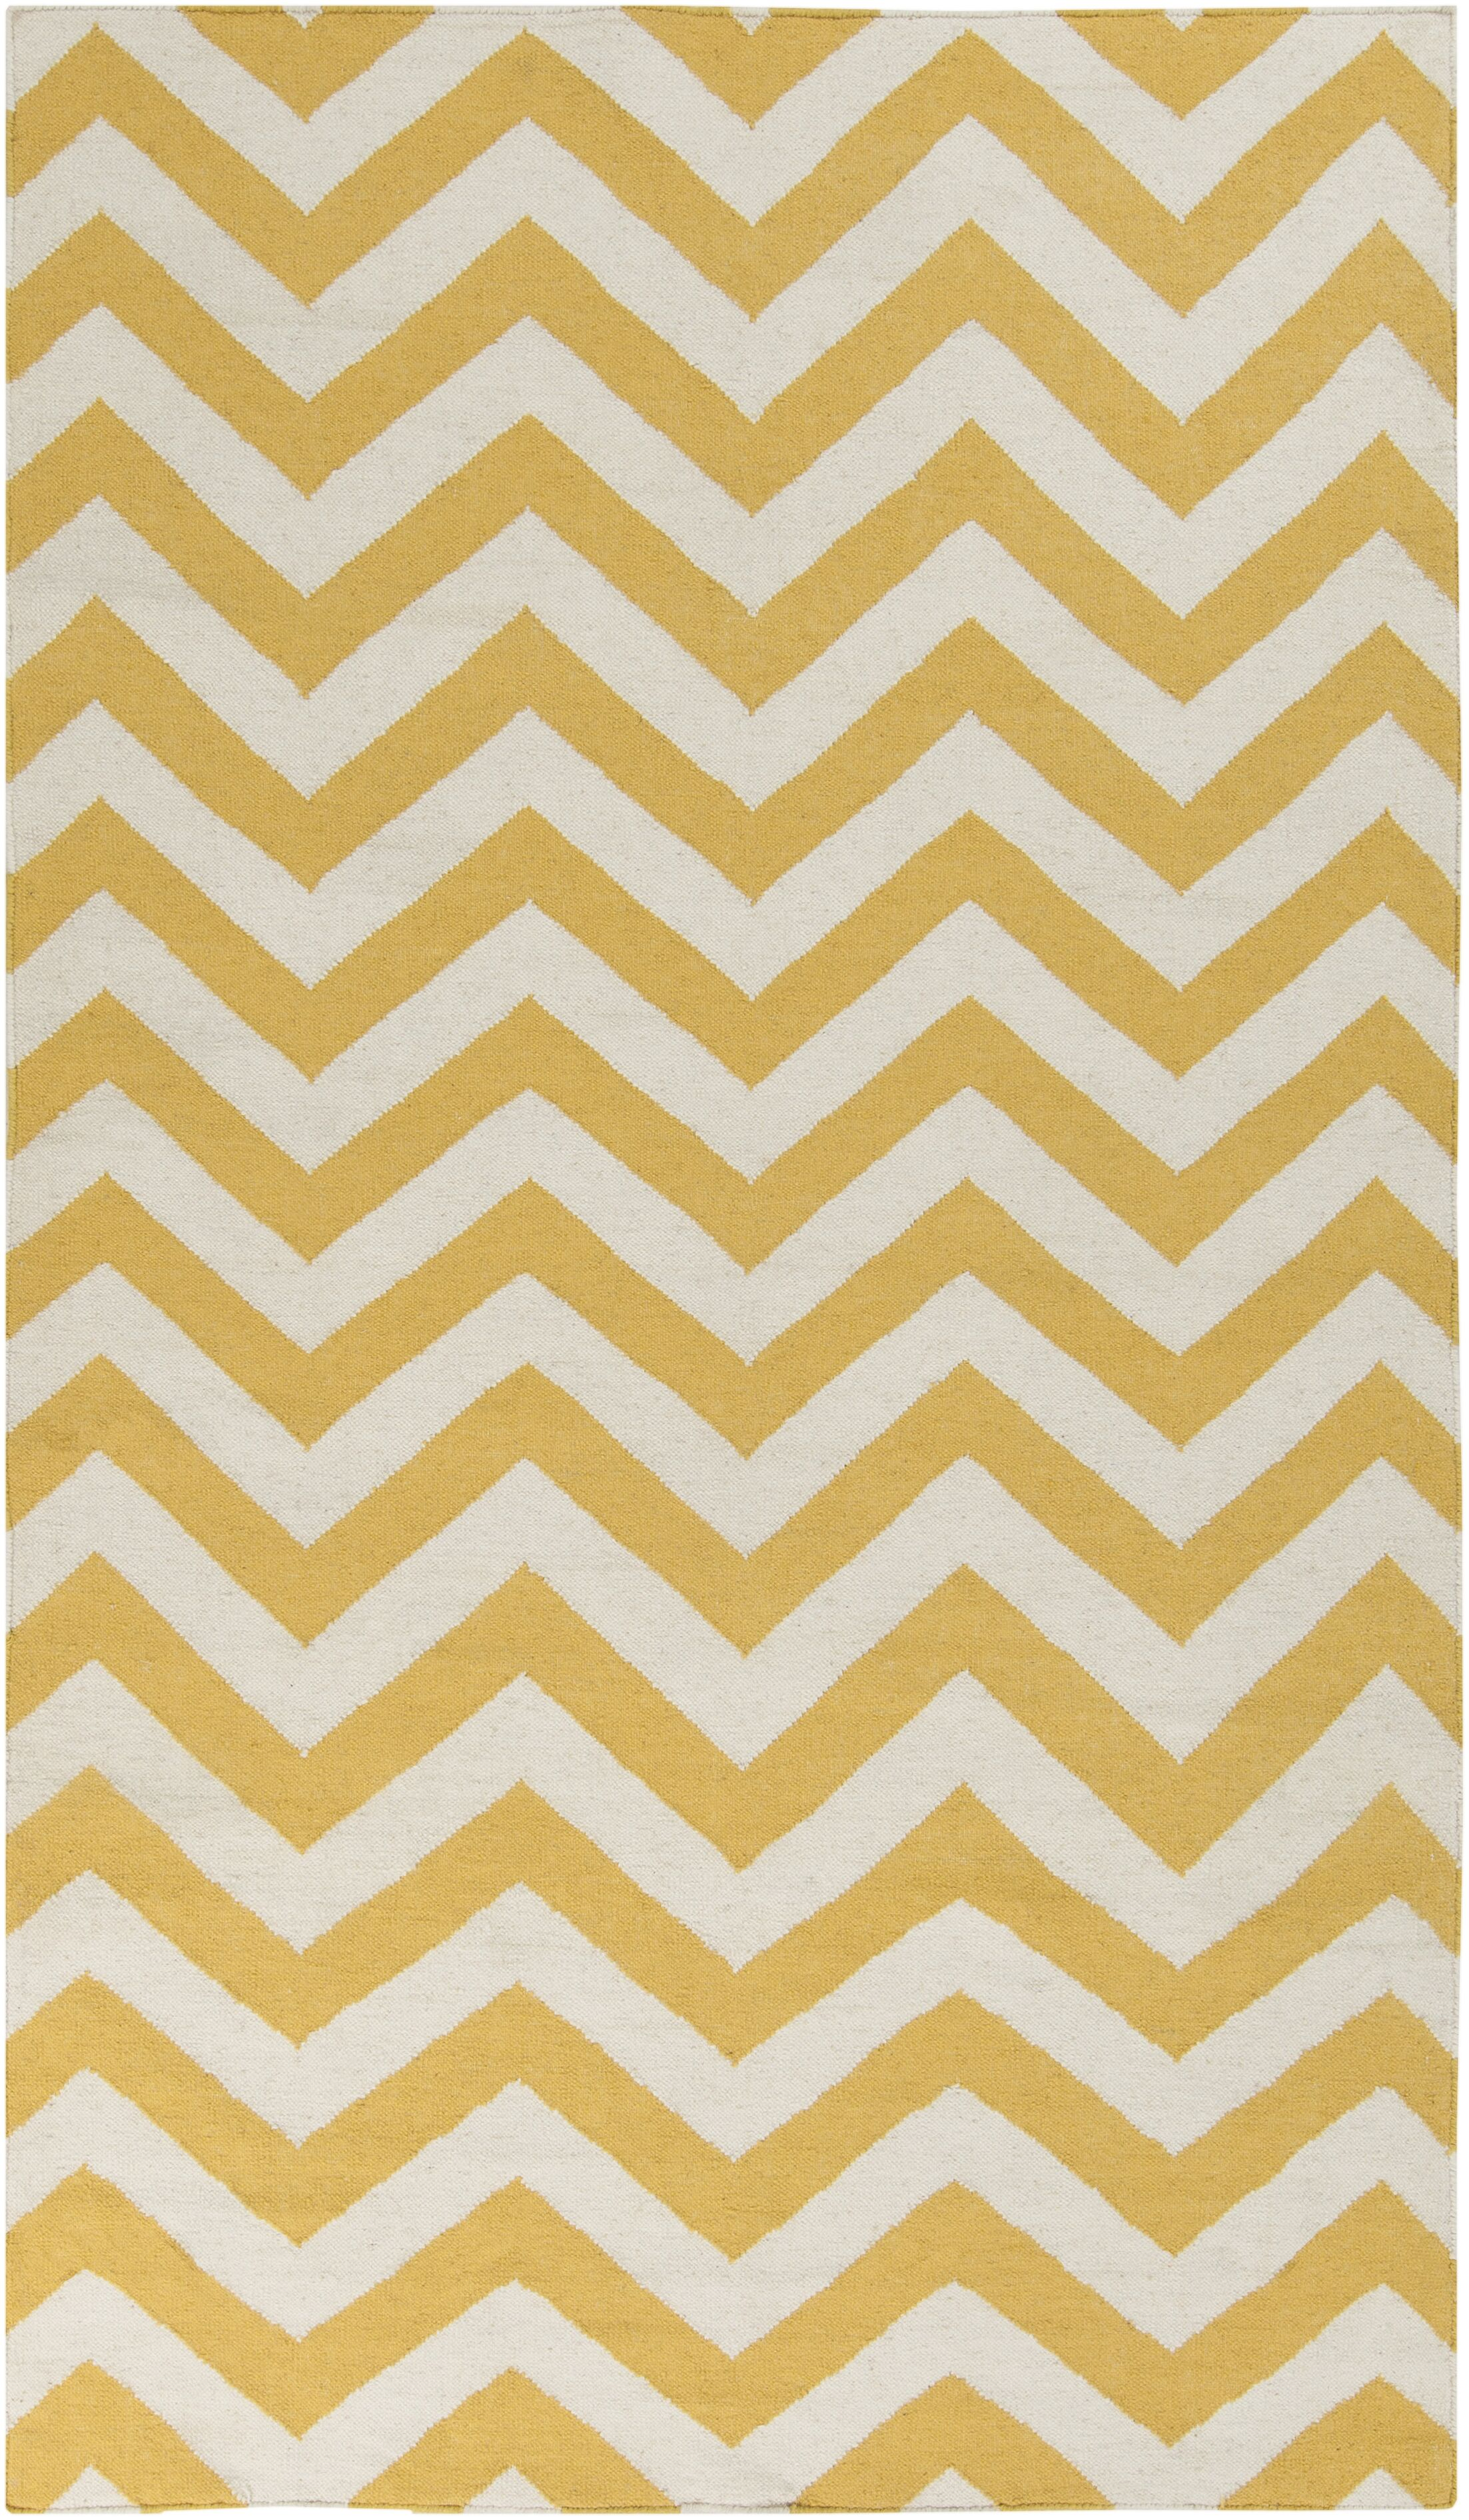 Marion Winter White/Old Gold Chevron Area Rug Rug Size: Rectangle 3'6